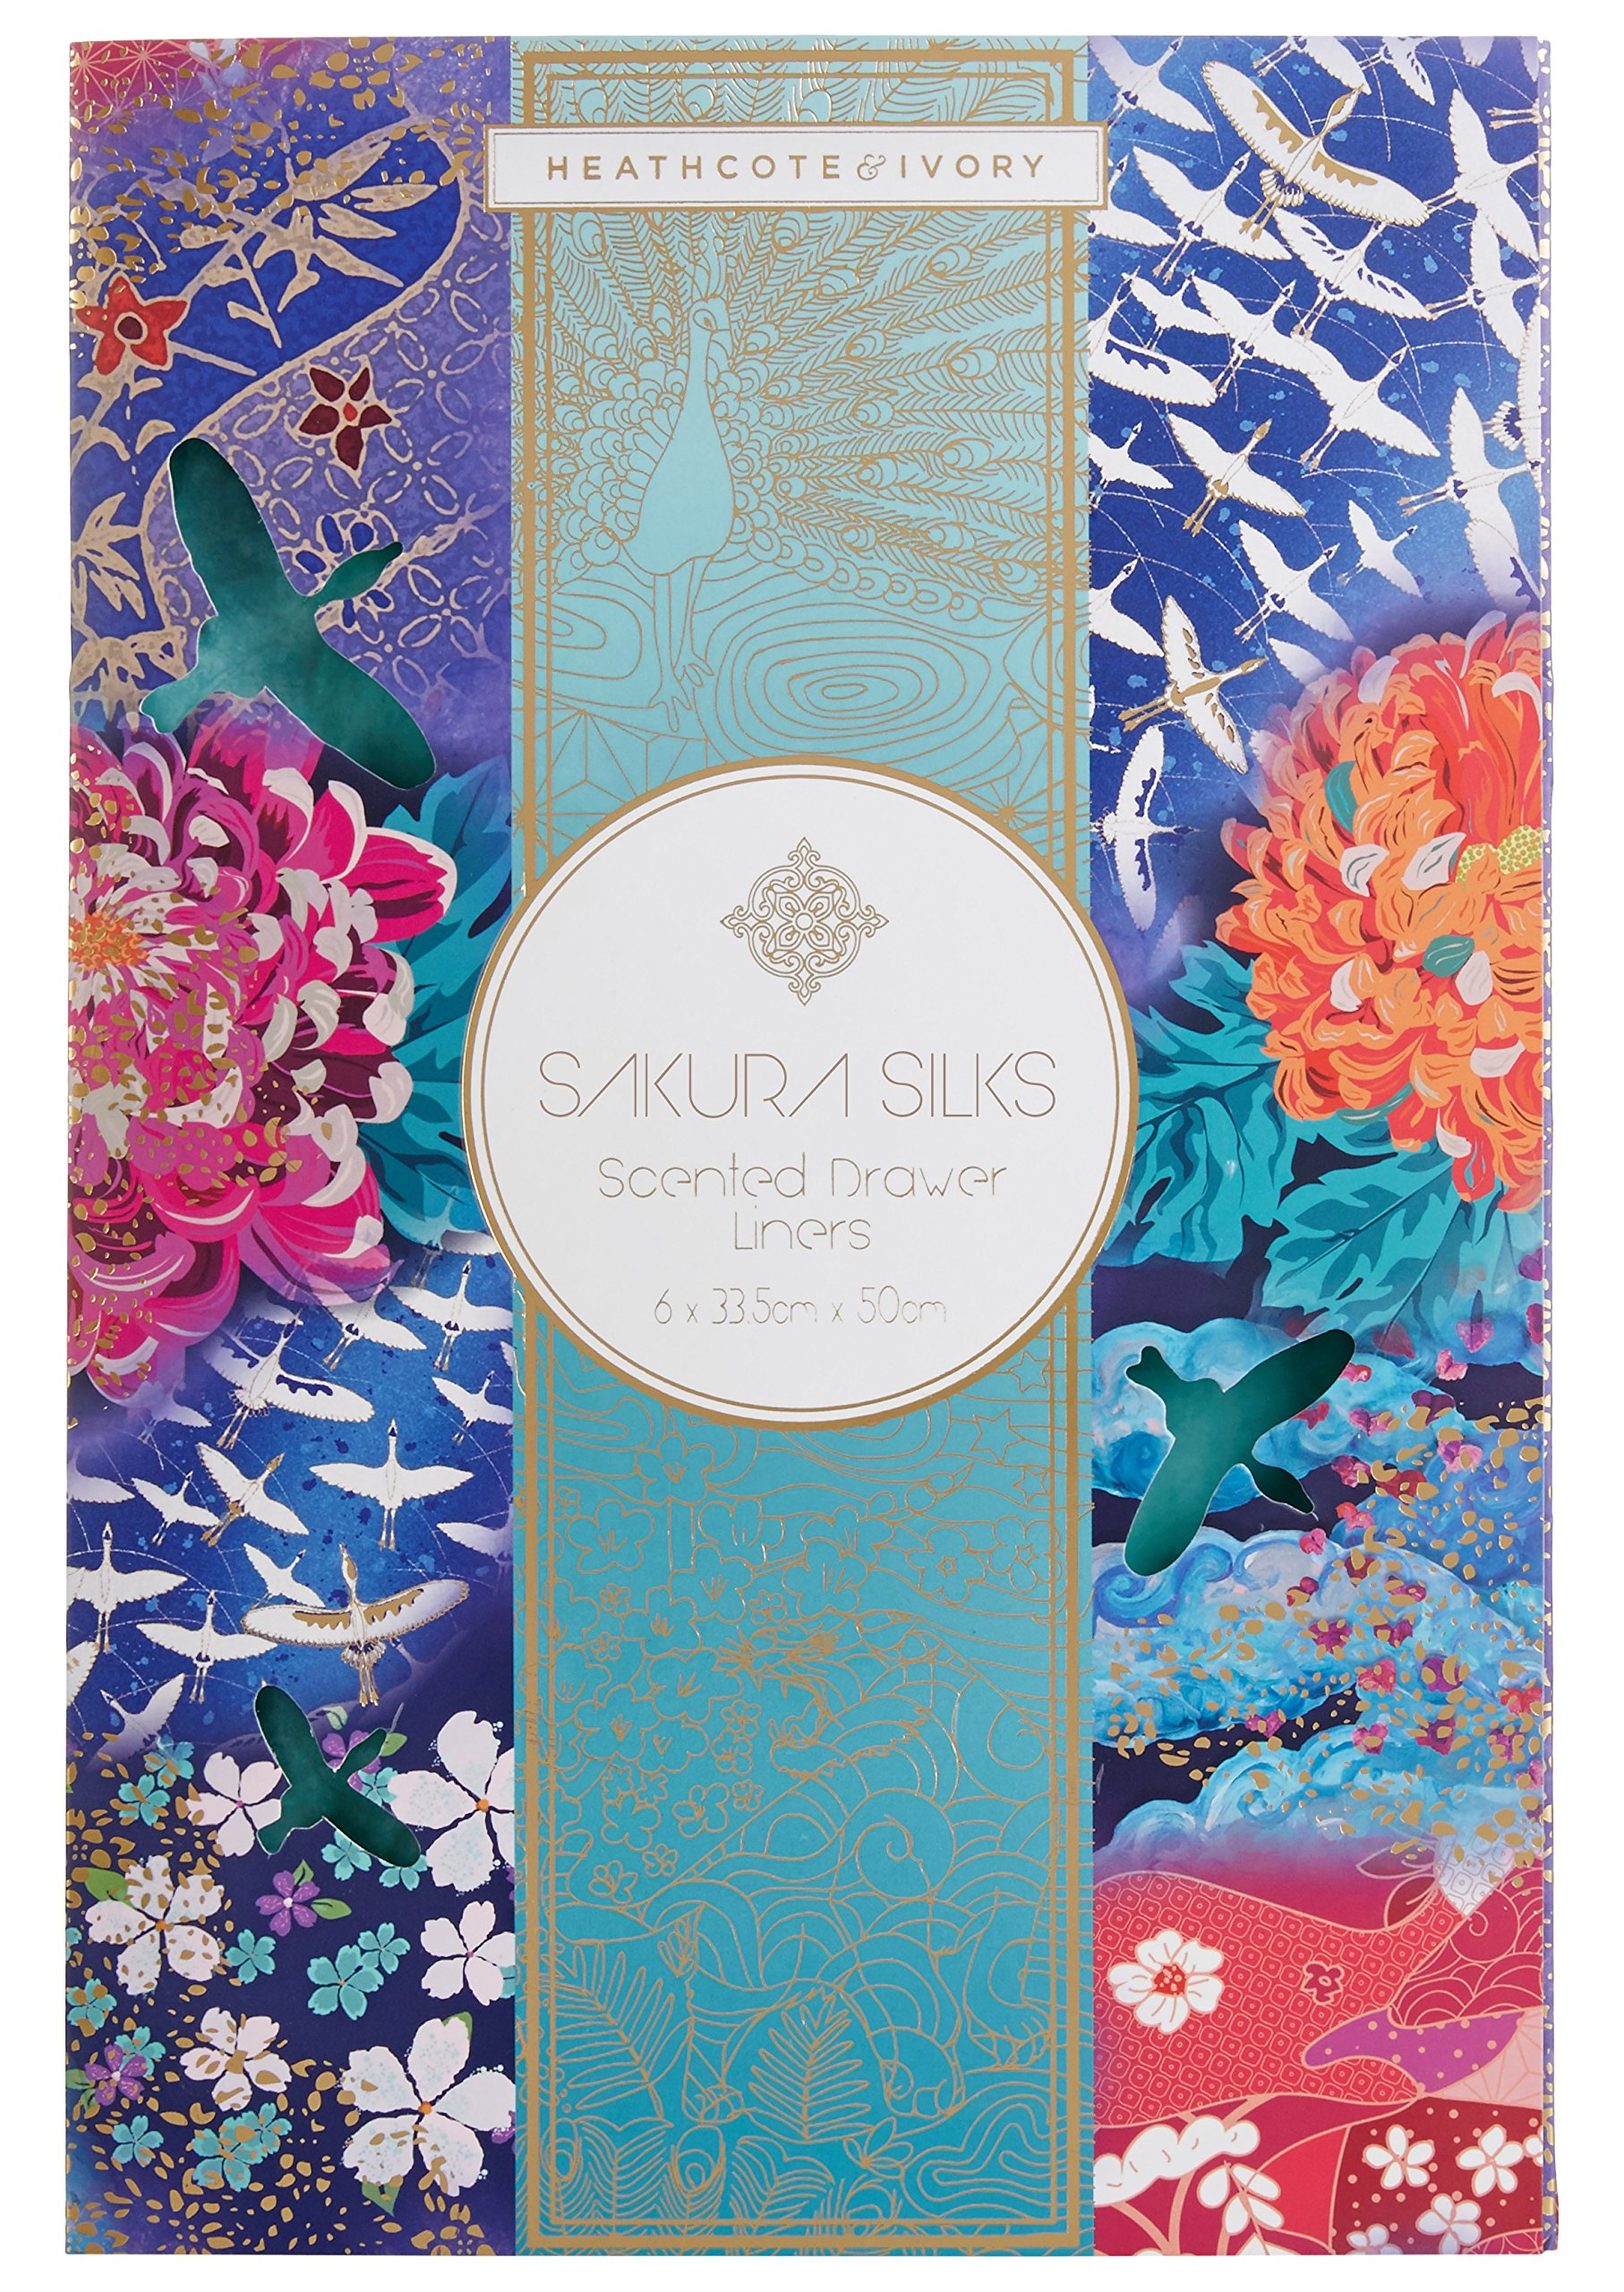 Heathcote & Ivory Sakura Silks Scented Drawer Liners